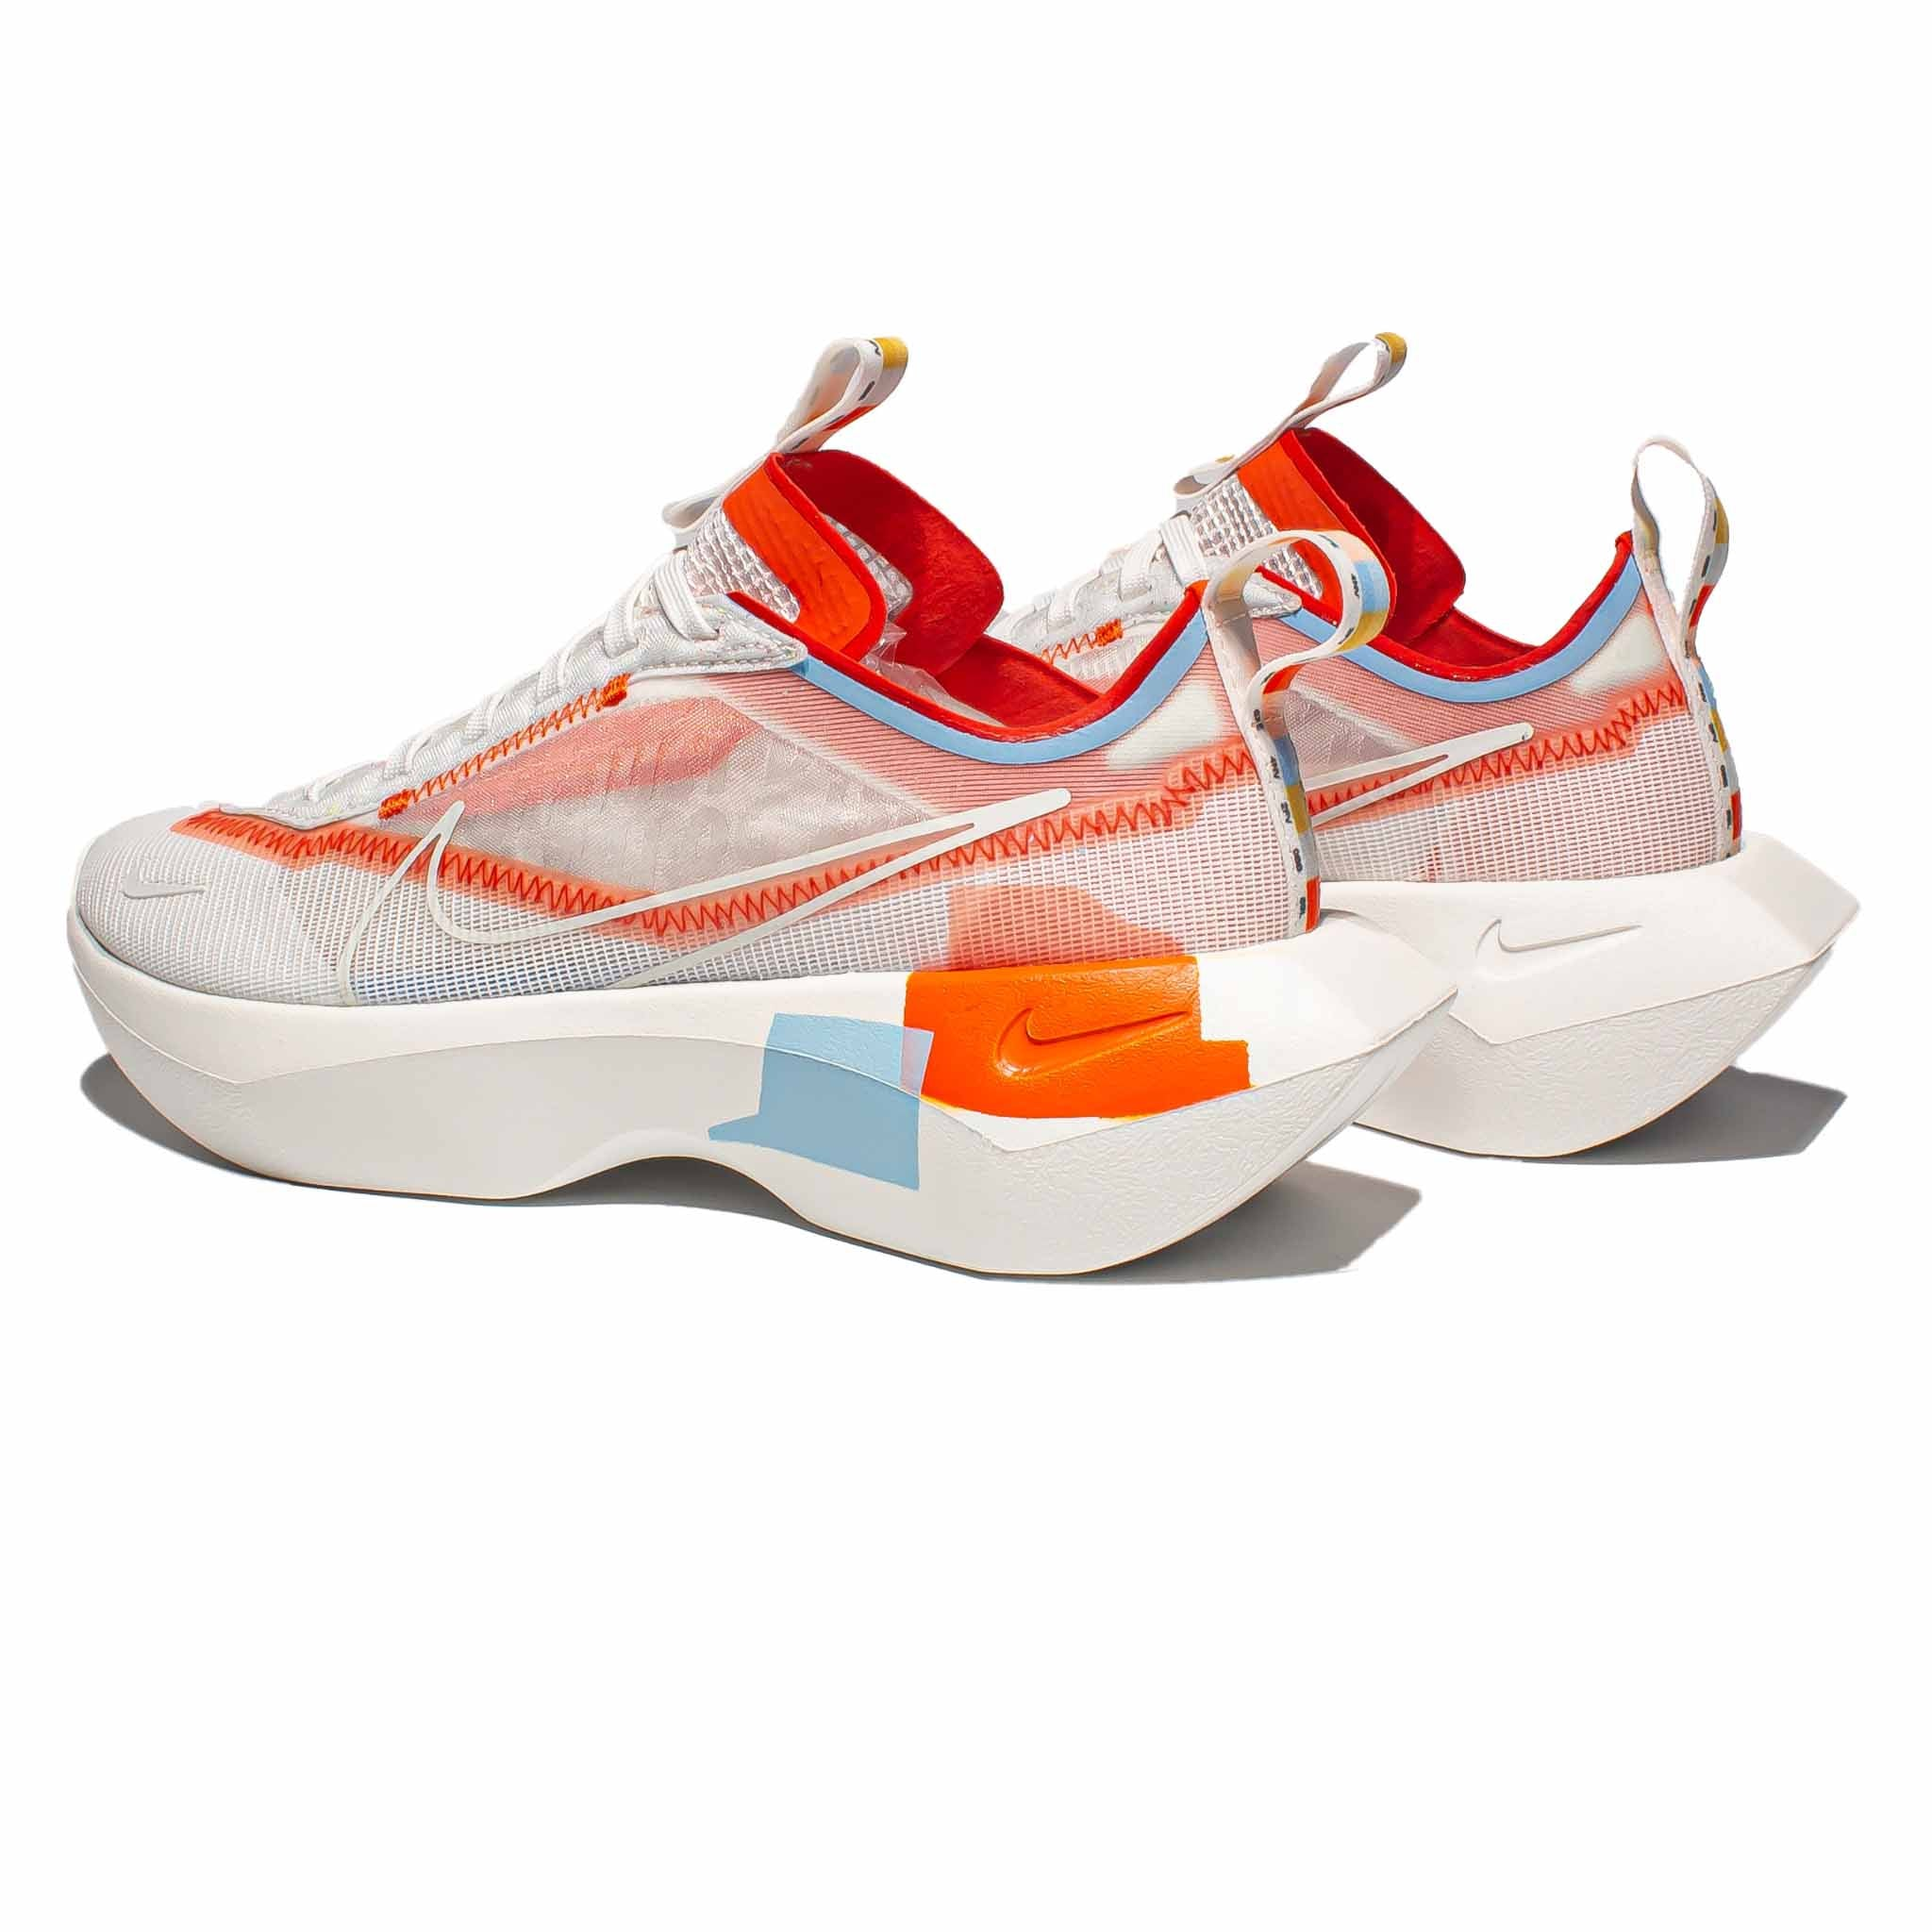 Nike Vista Lite SE 'Team Orange'